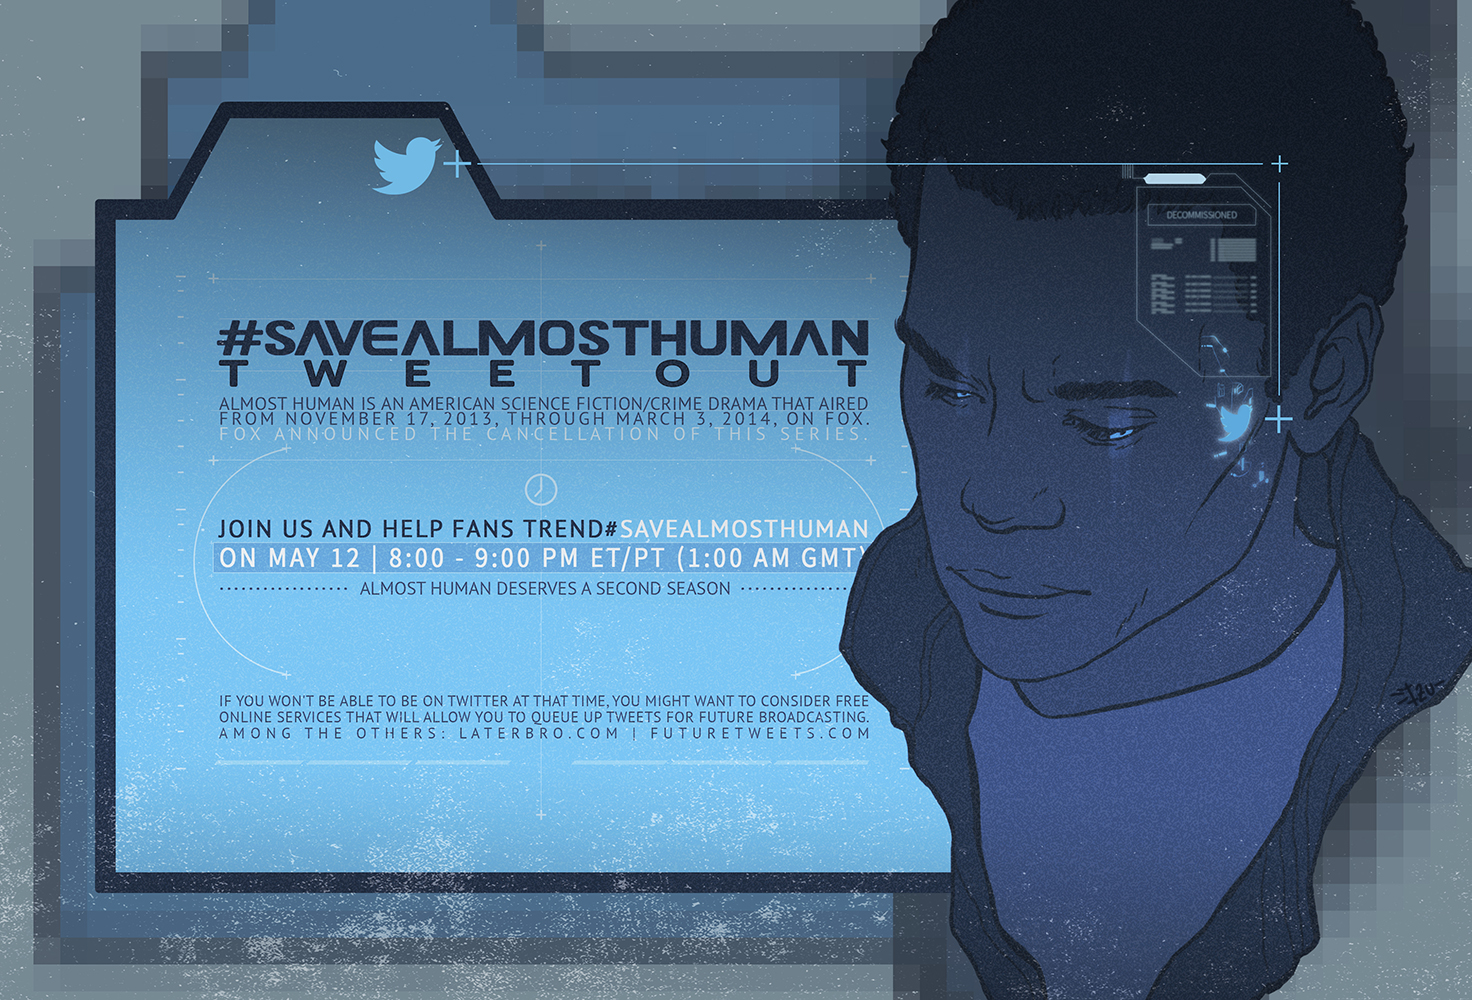 SAVE ALMOST HUMAN by thenizu